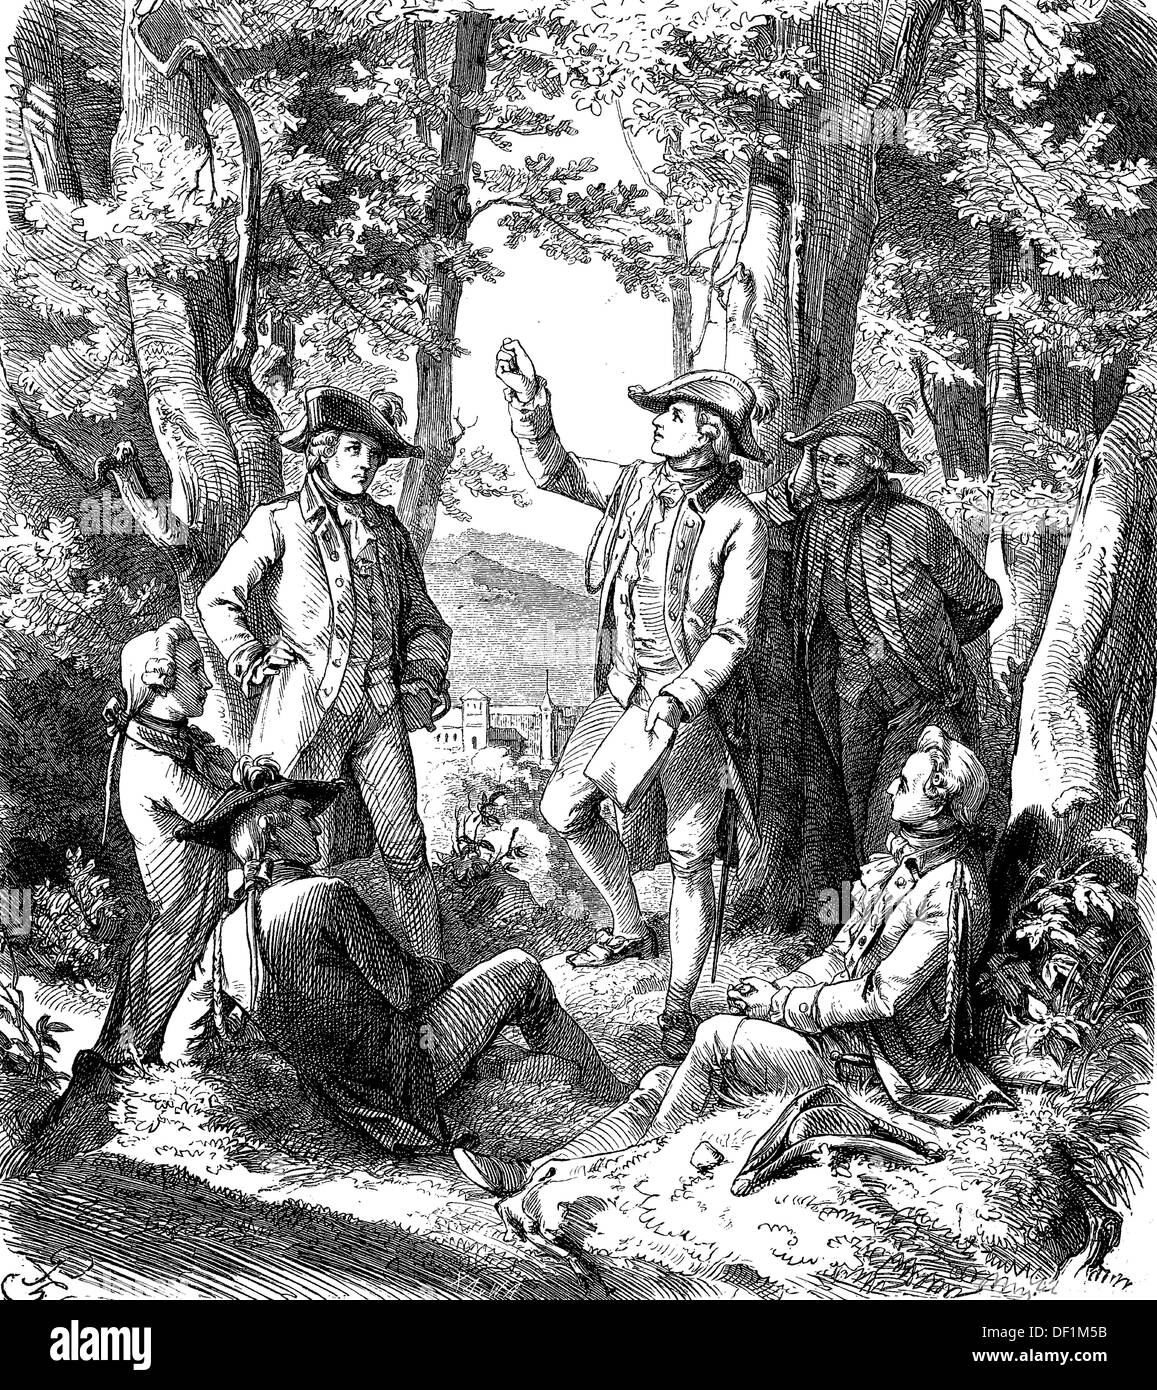 Johann Christoph Friedrich von Schiller, 1759-1805, his students reading aloud the novel 'The Robbers', woodcut from 1864 - Stock Image